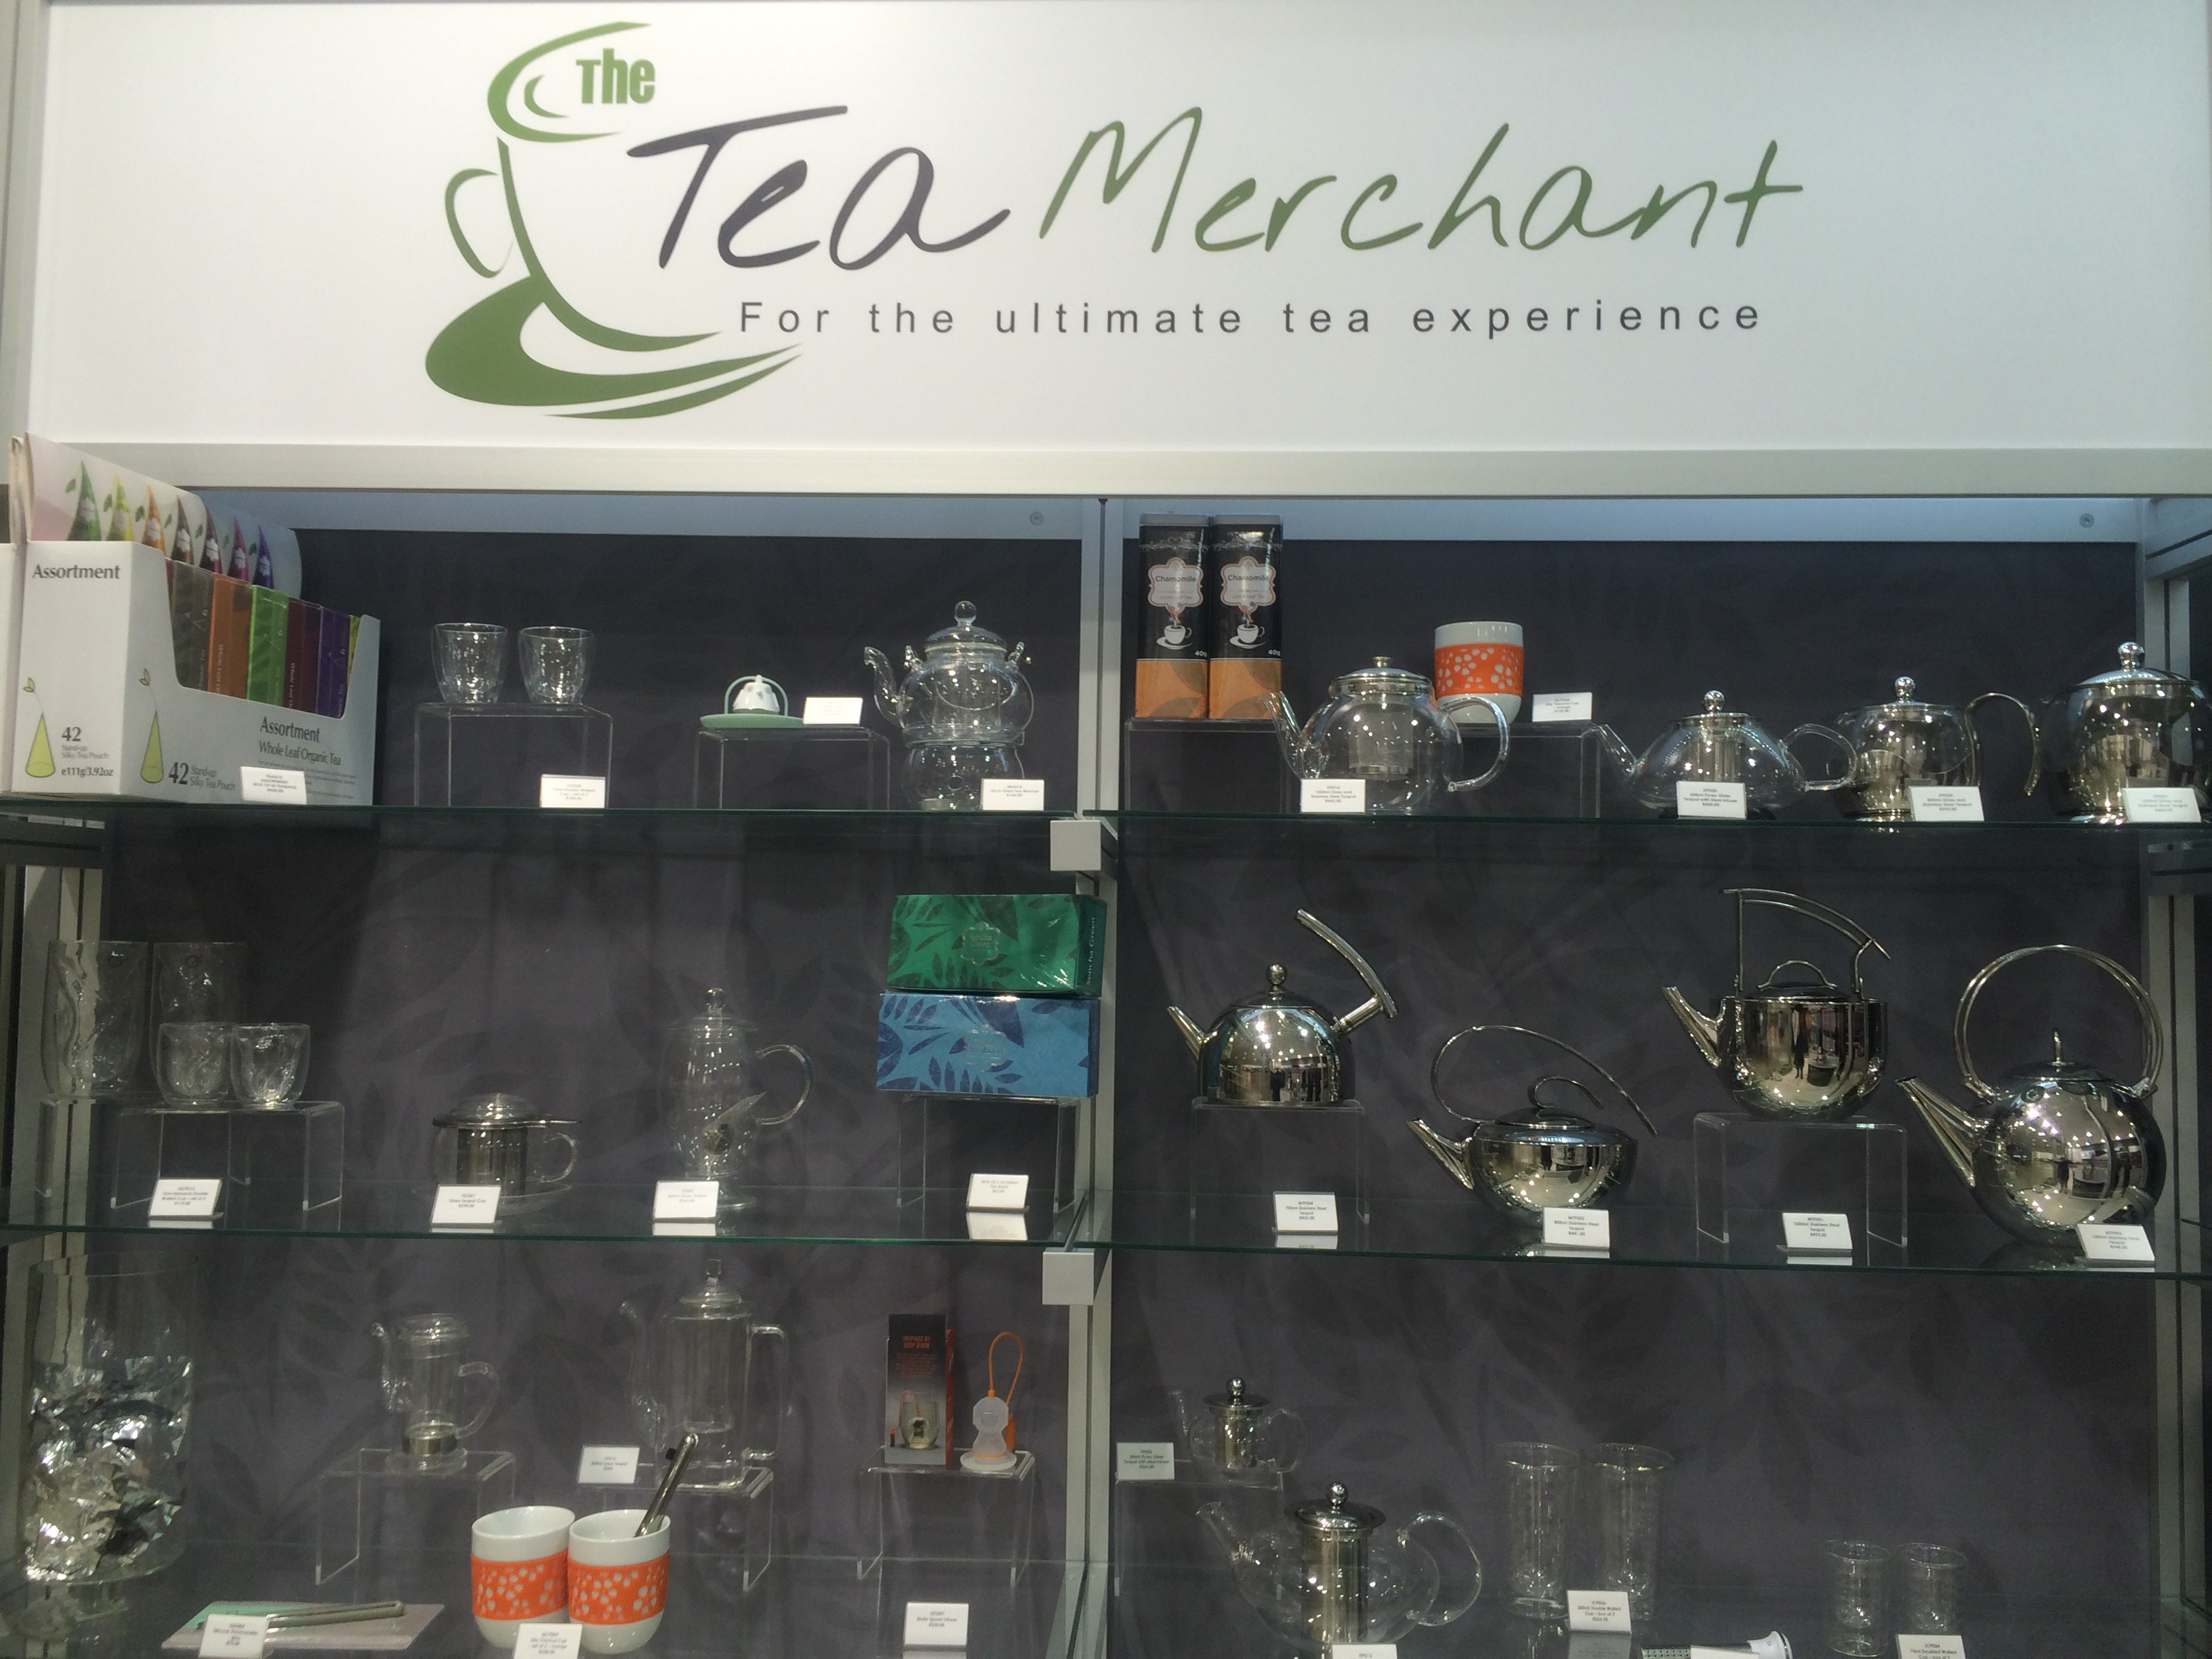 The Tea Merchant